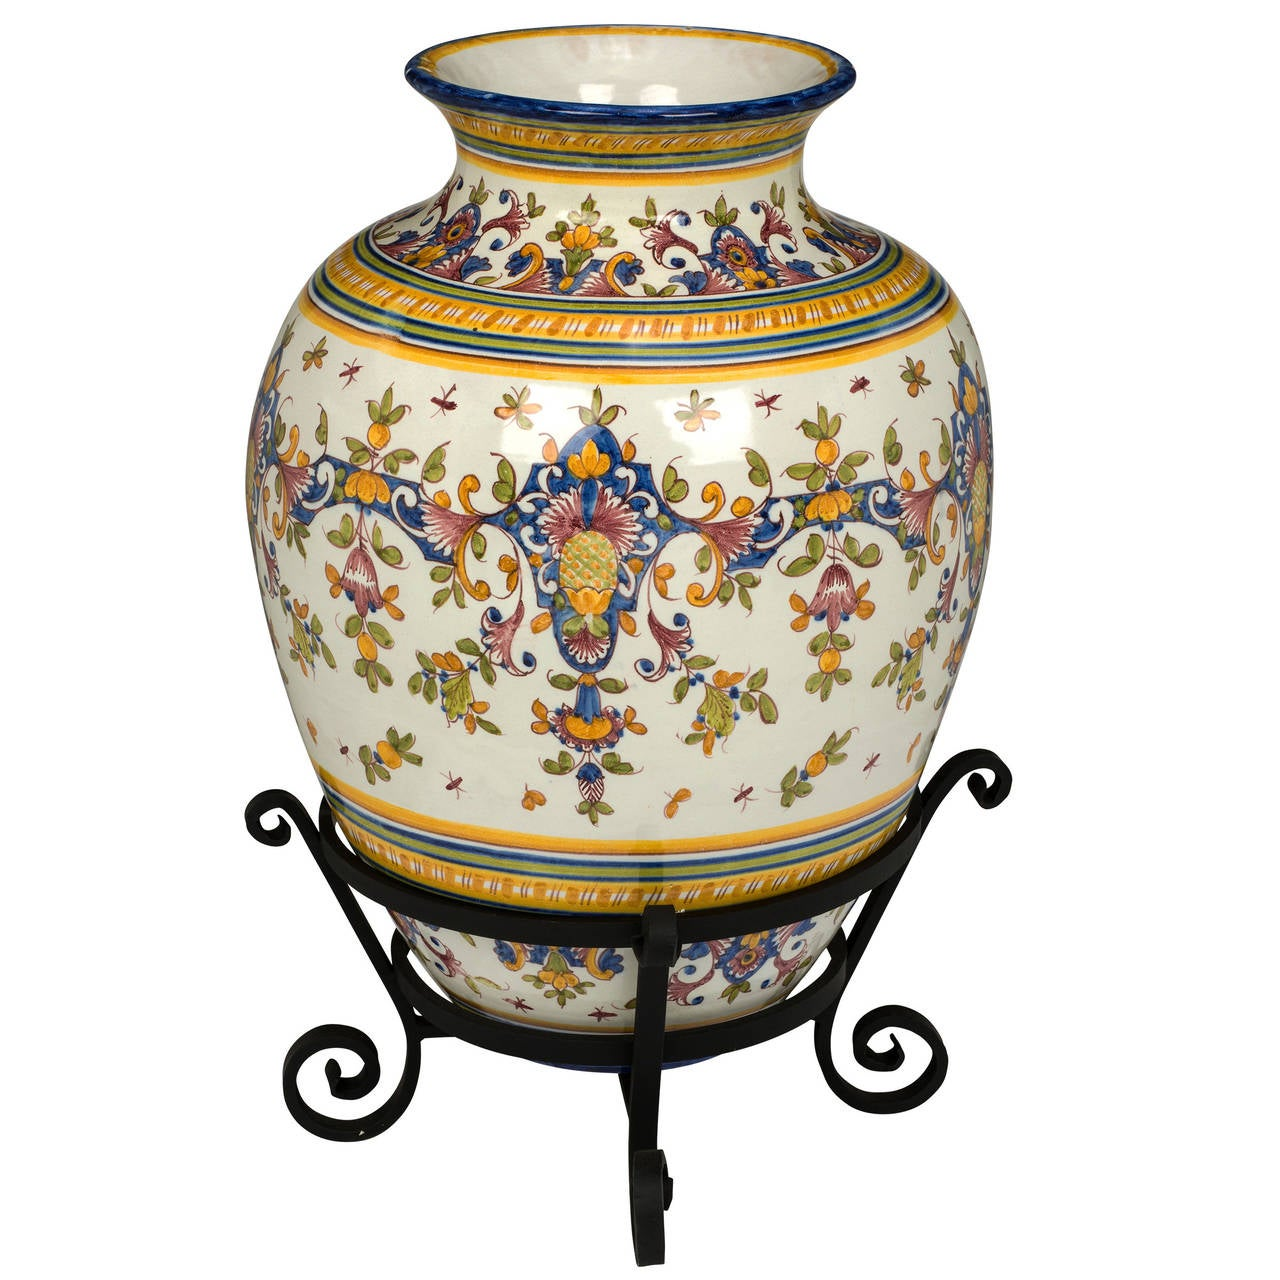 Large 29 tall portuguese urn for sale at 1stdibs - Large decorative vases and urns ...